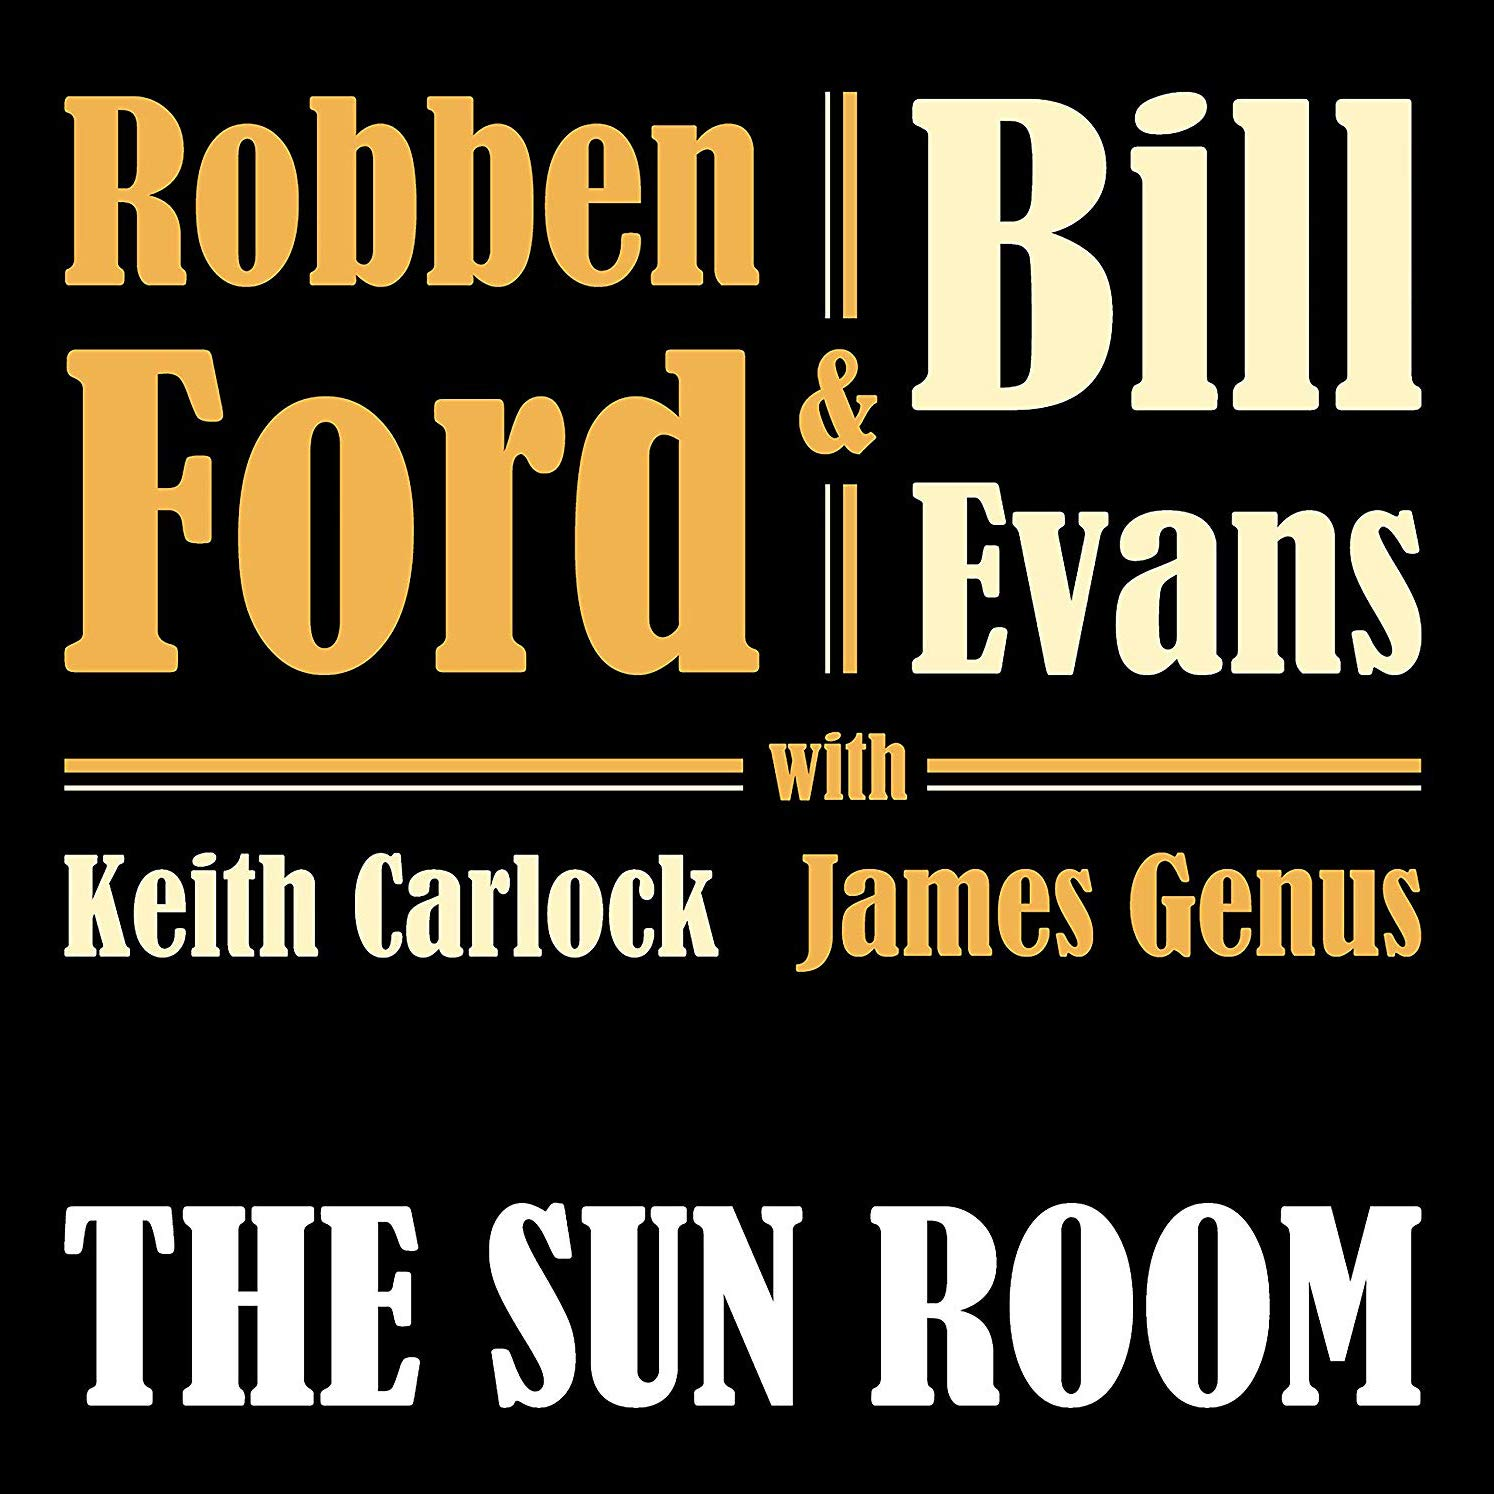 ROBBEN FORD - Robben Ford & Bill Evans : The Sun Room cover